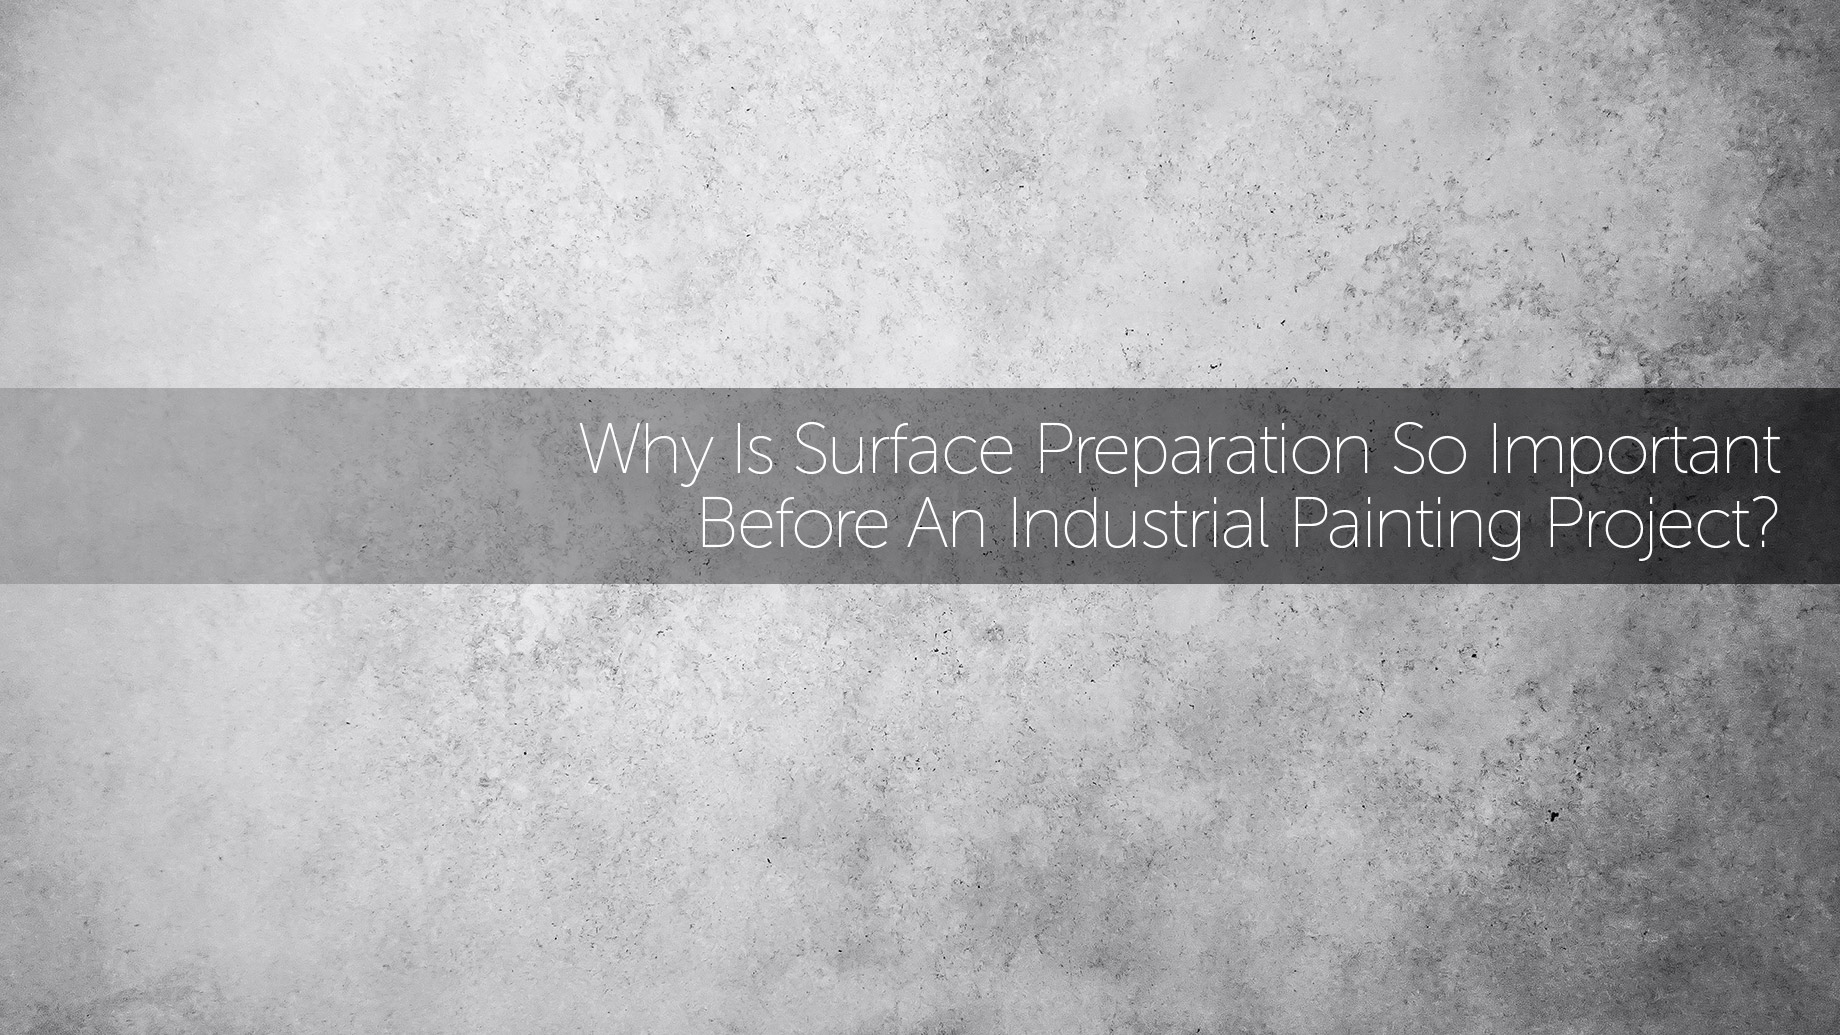 Why Is Surface Preparation So Important Before An Industrial Painting Project?